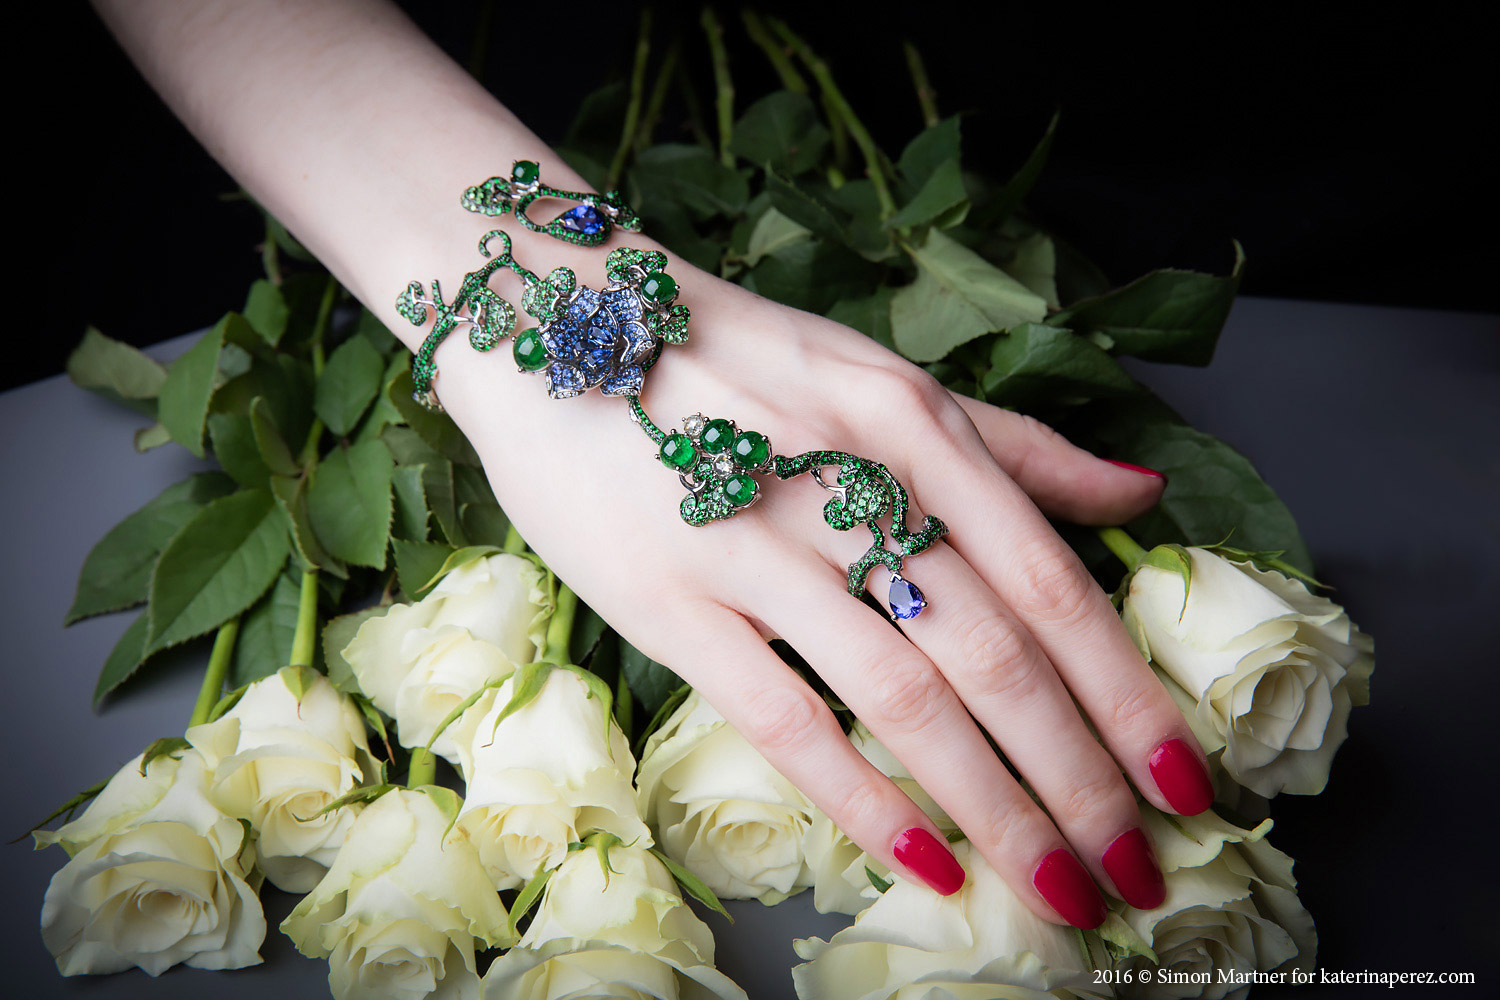 Wendy Yue tsavorite, tanzanite, blue sapphire, diamonds and 18K black gold hand bracelet – £21.120